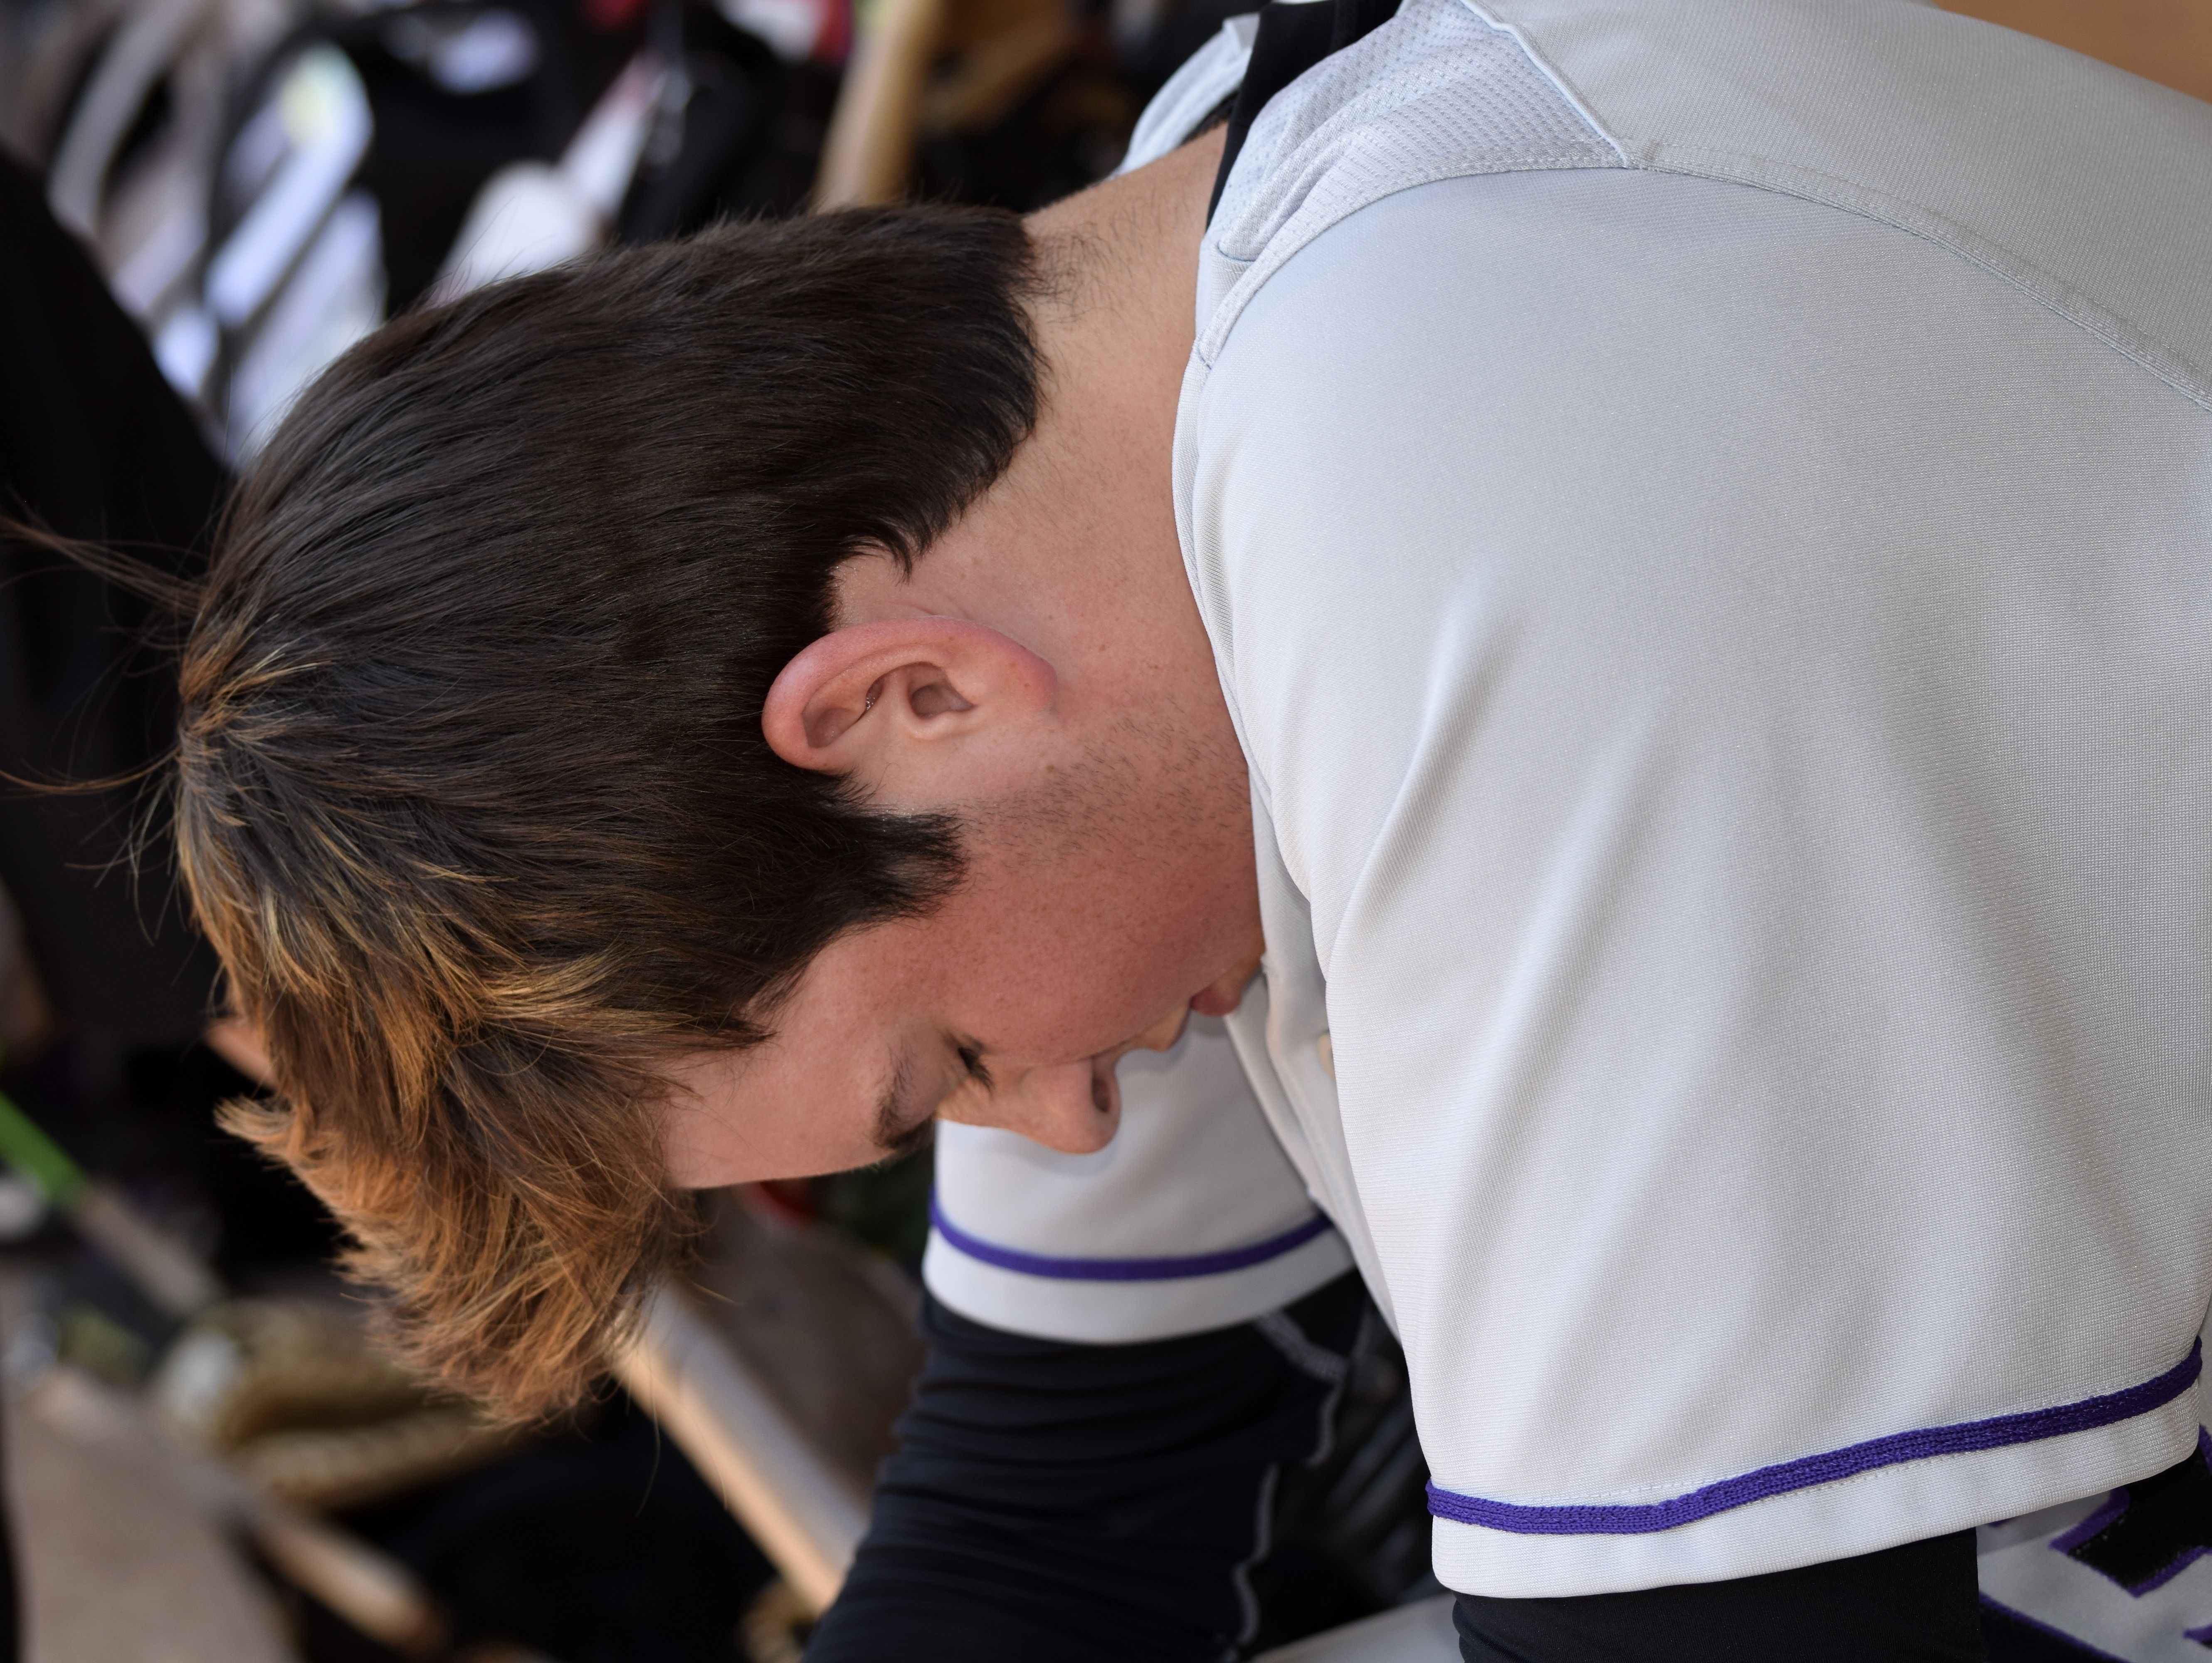 CHCA pitcher Griffan Smith takes a moment for quiet prayer before taking mound.